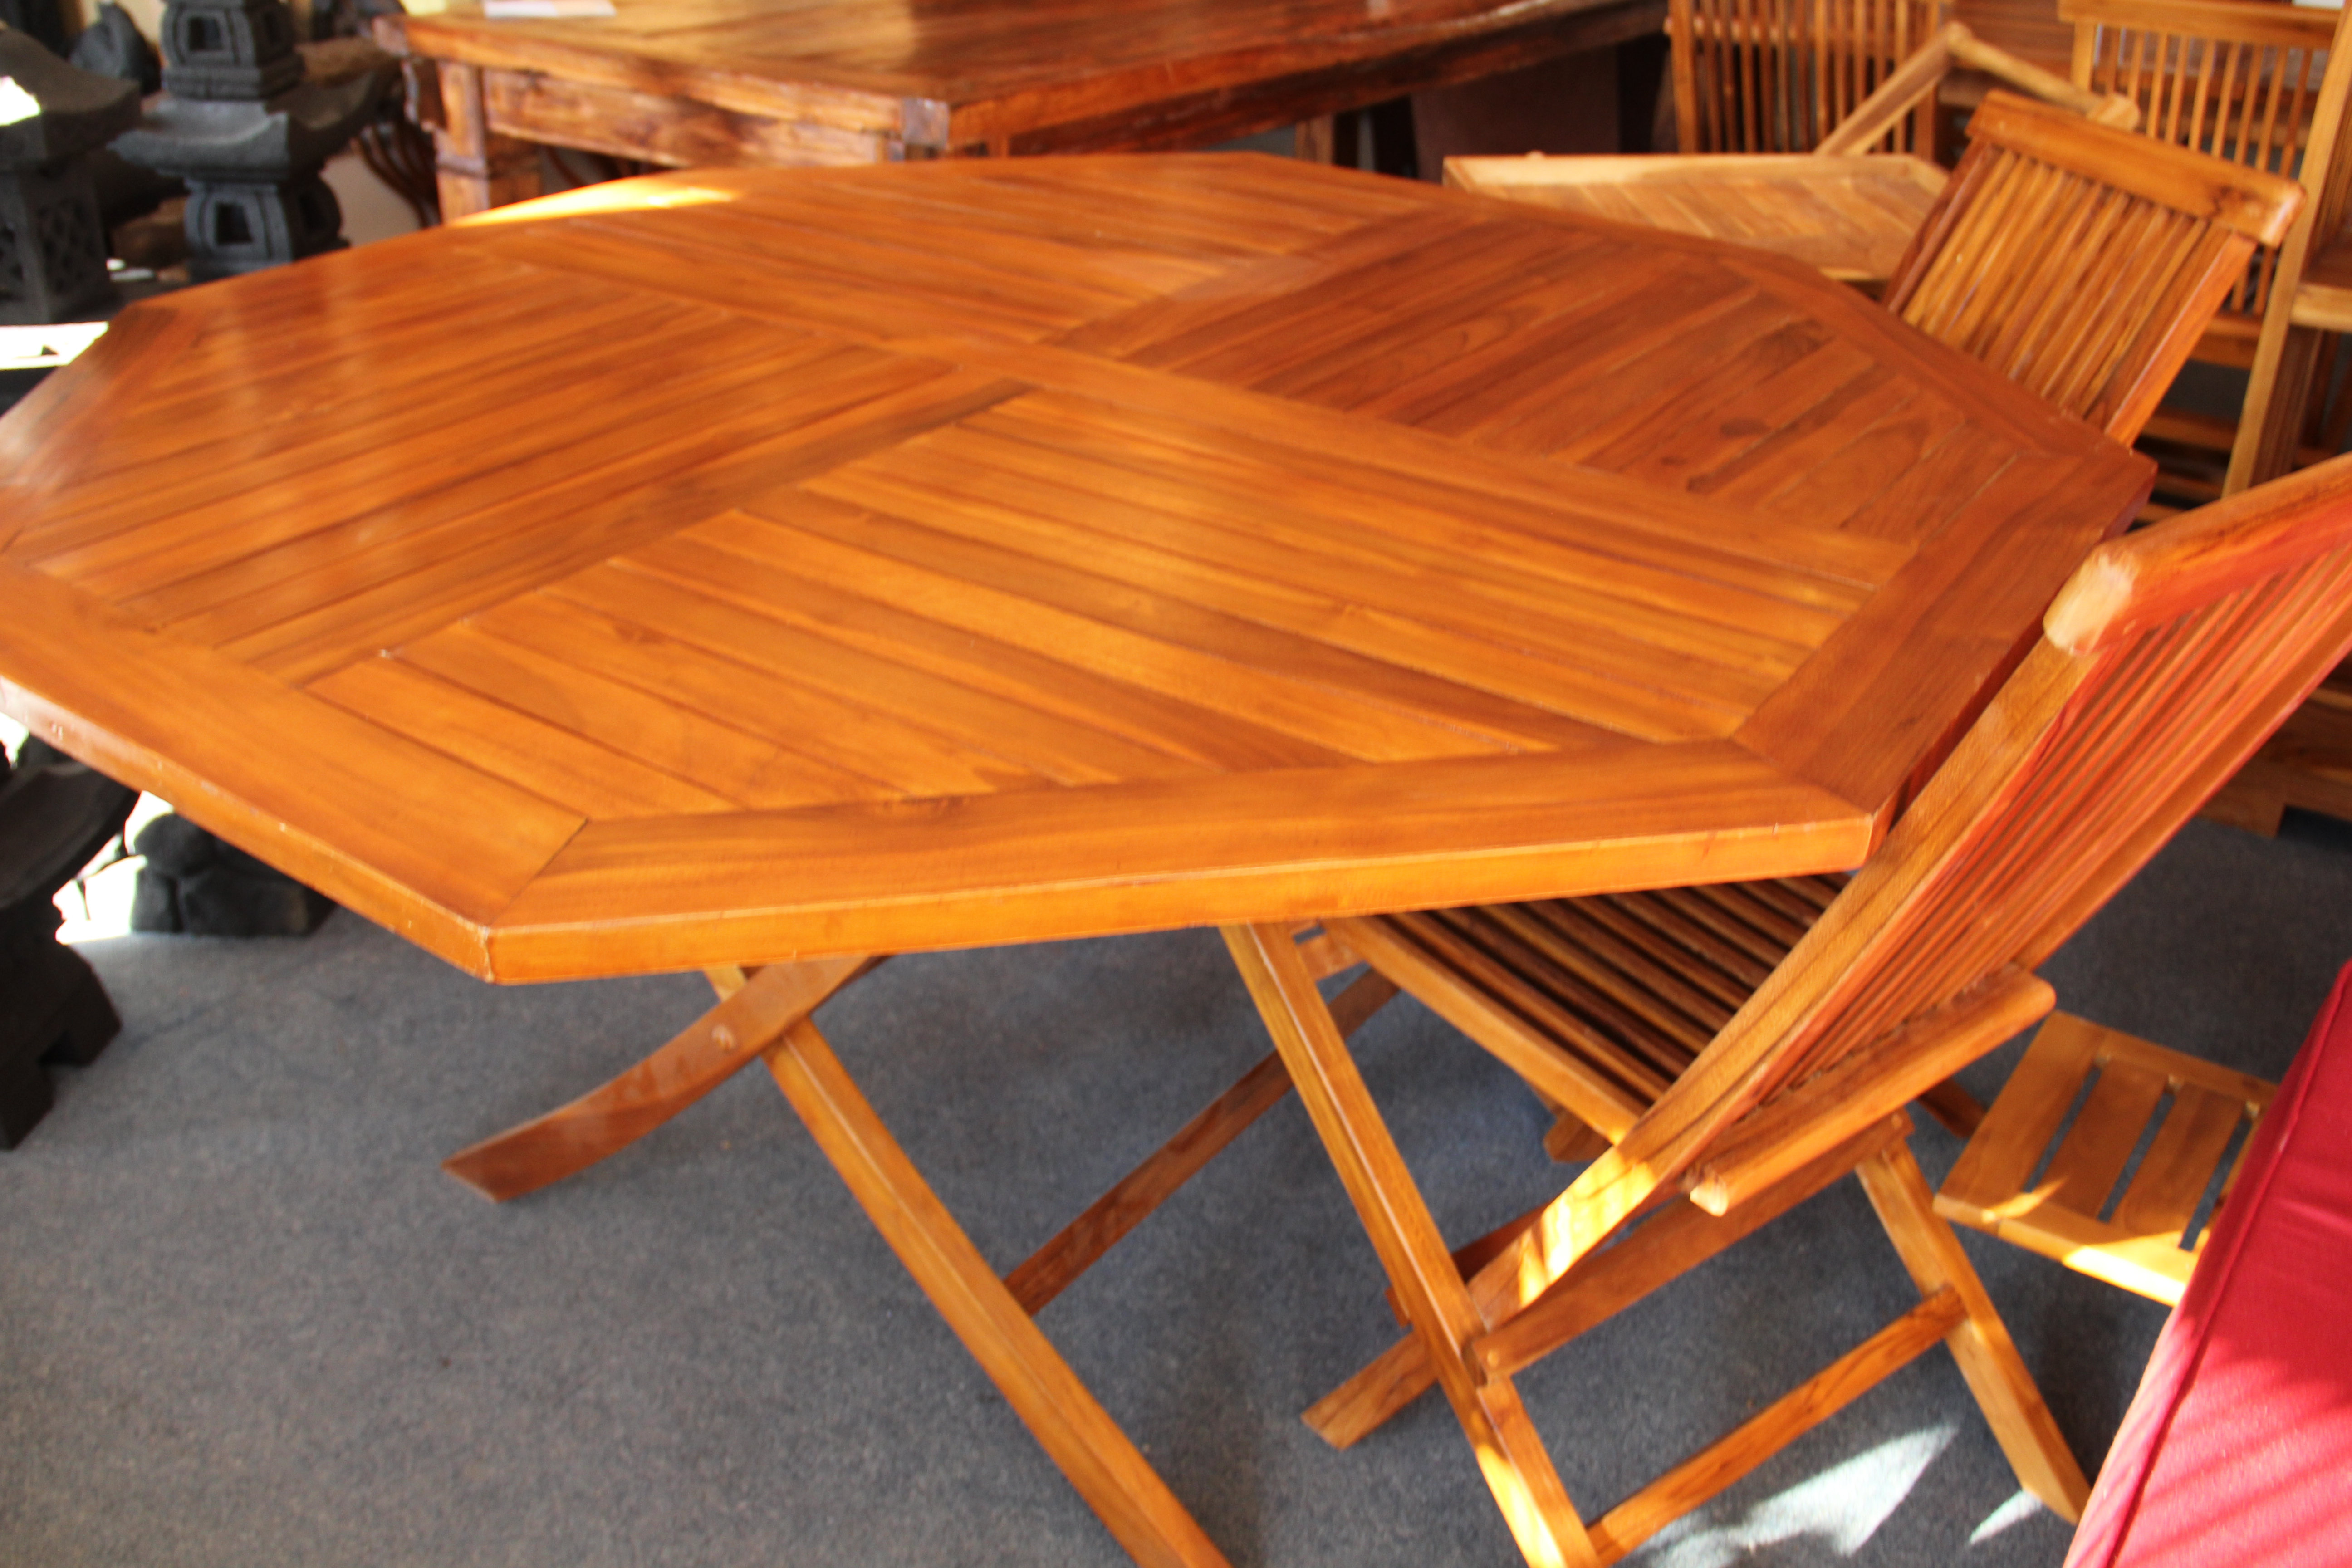 Octagonal Scissor Leg Table